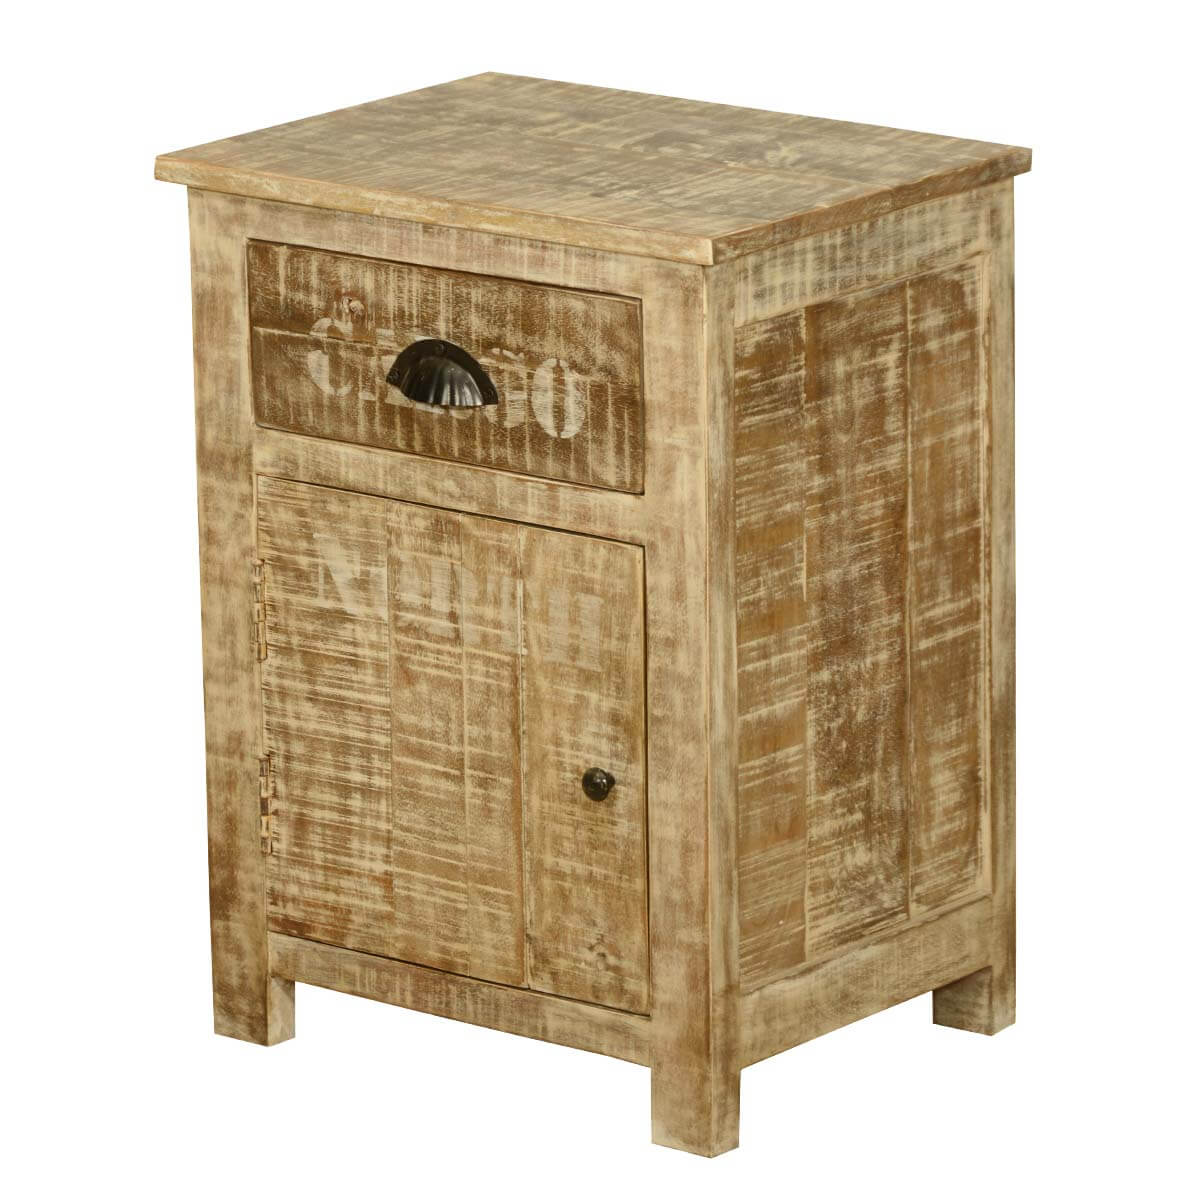 Amish rustic solid wood 1 drawer bedside nightstand cabinet for Rustic wood nightstand